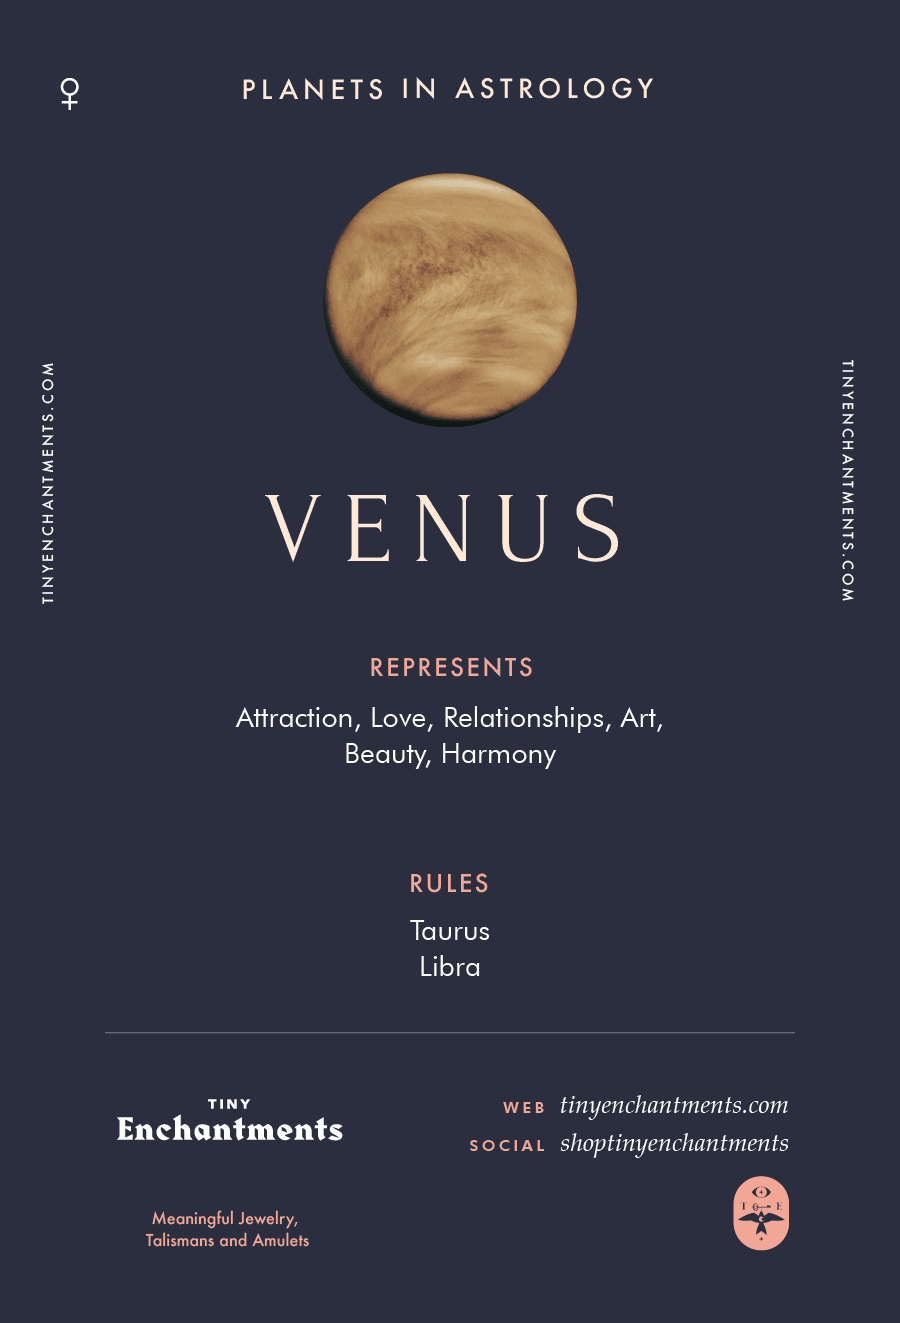 Venus Sign in Astrology - Planet Meaning, Zodiac, Symbolism, Characteristics Infographic